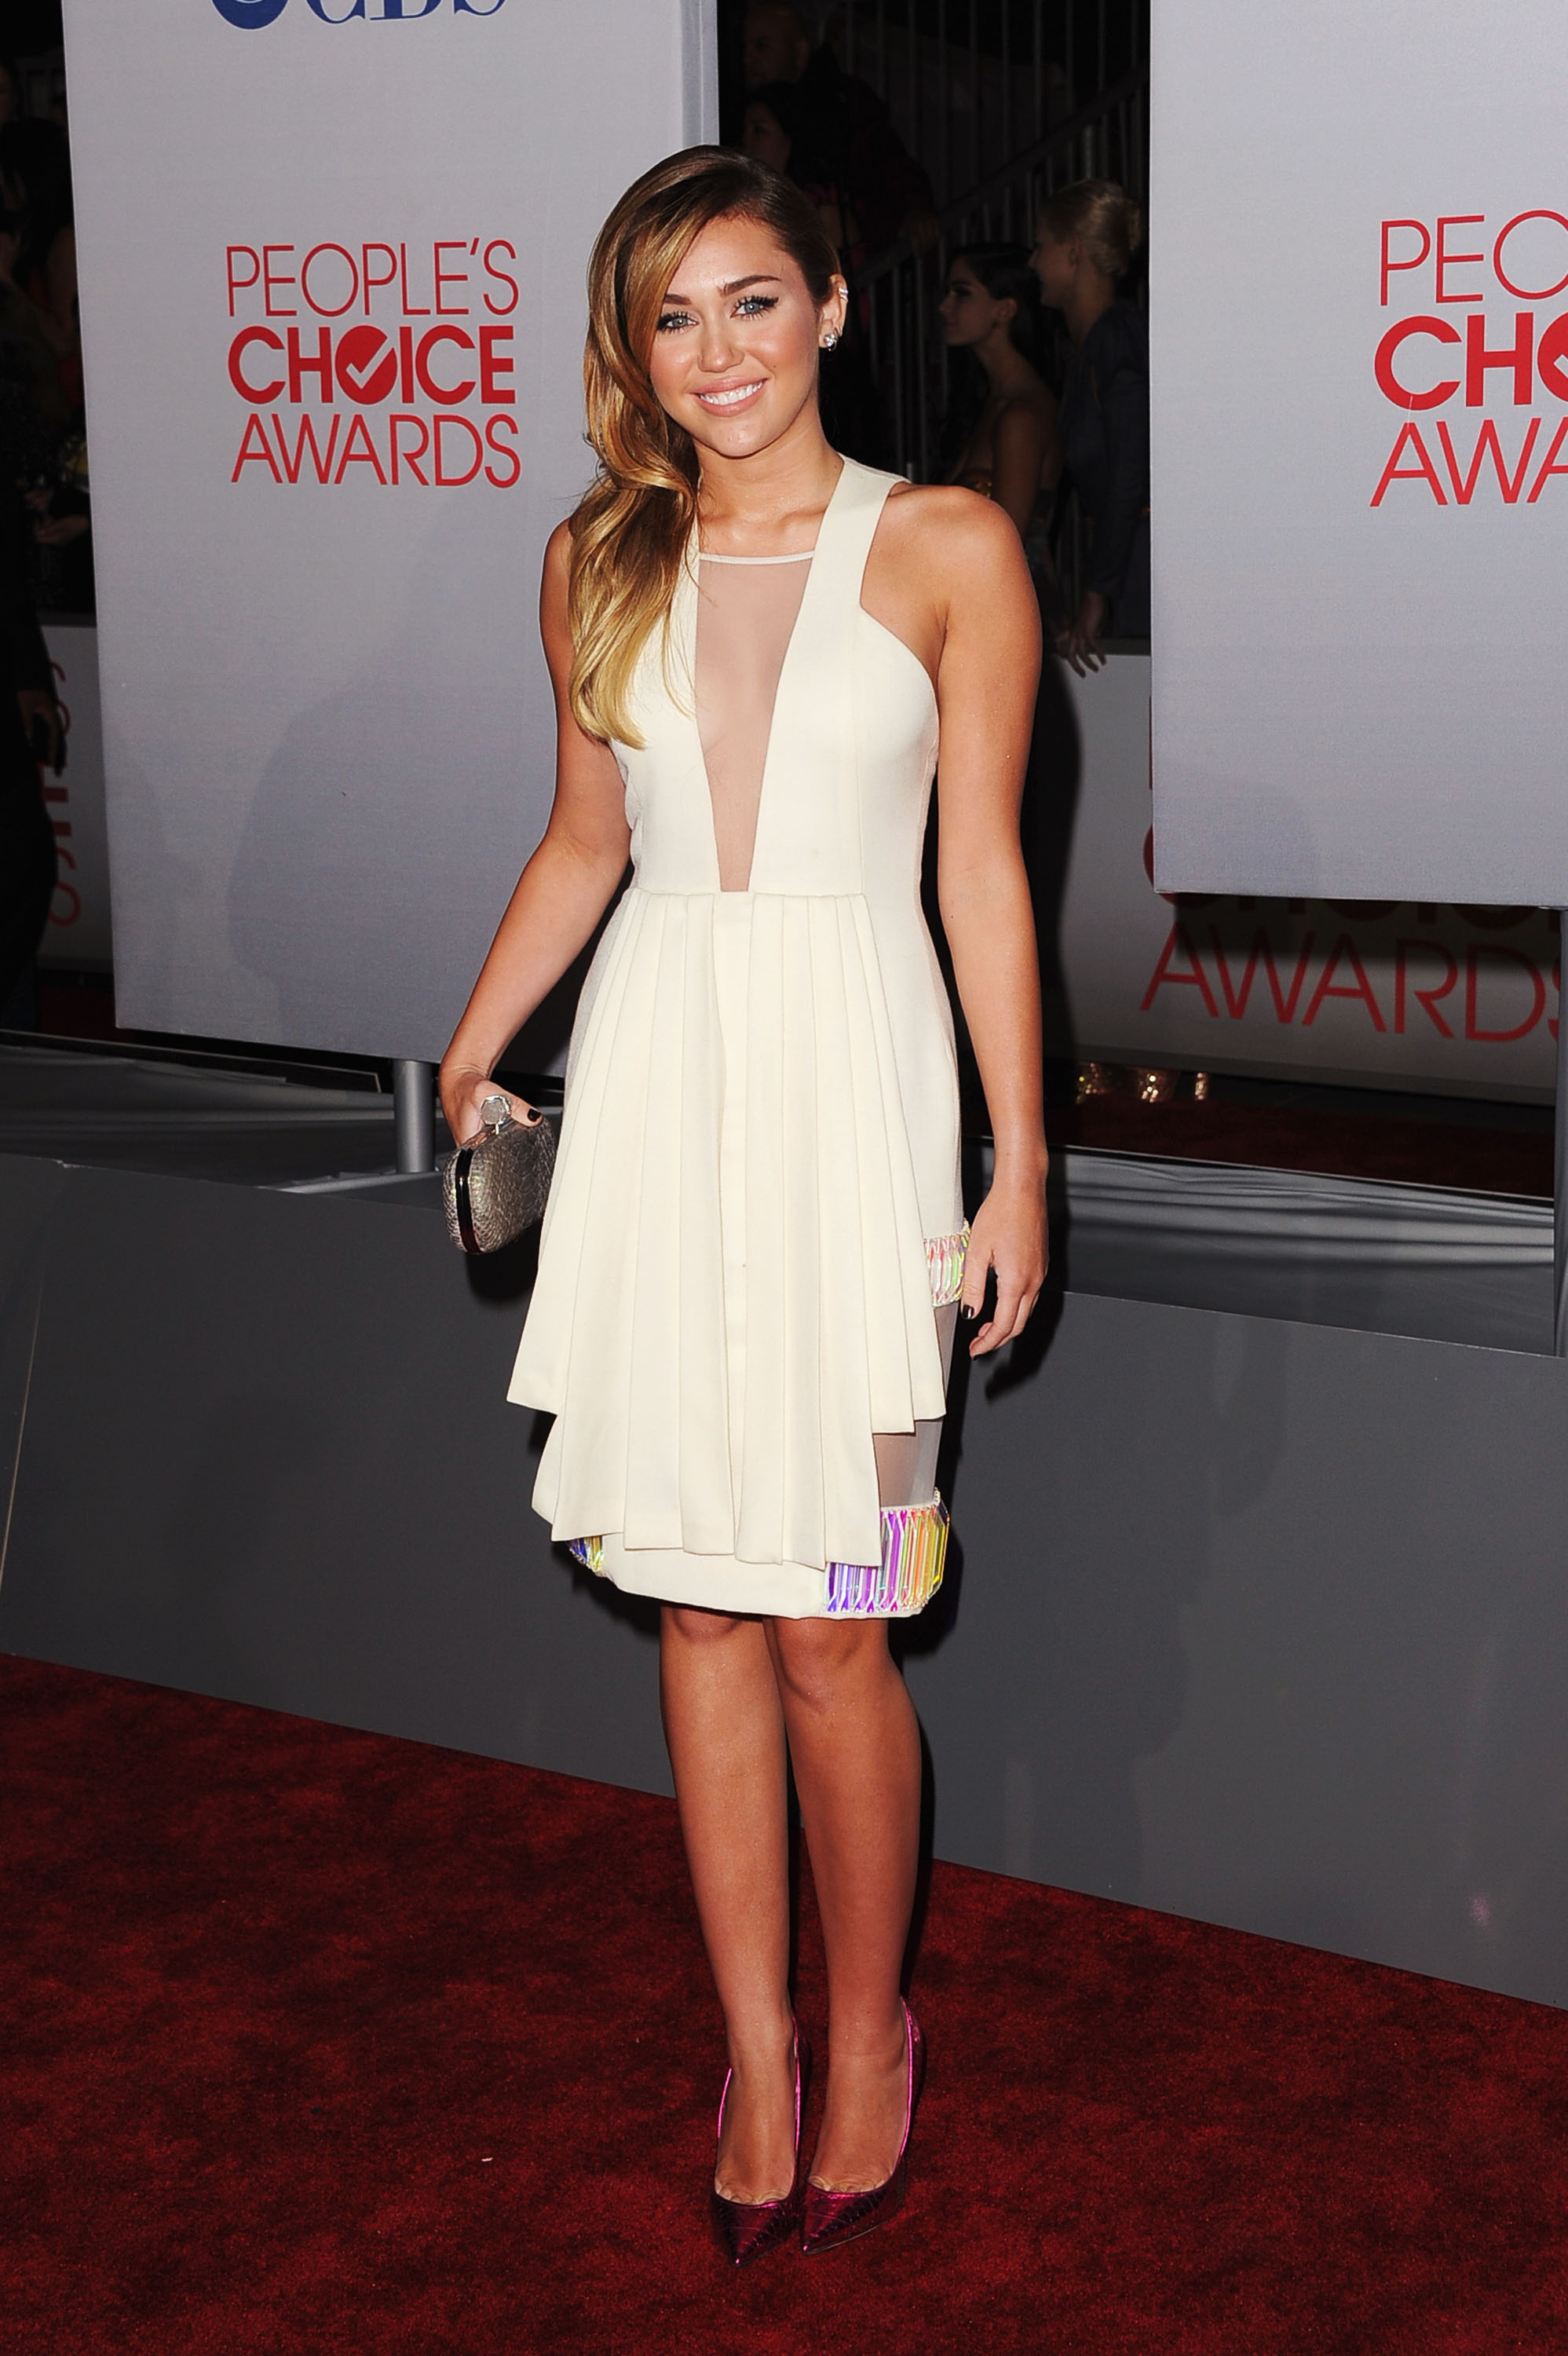 Miley Cyrus in a cream David Koma dress.